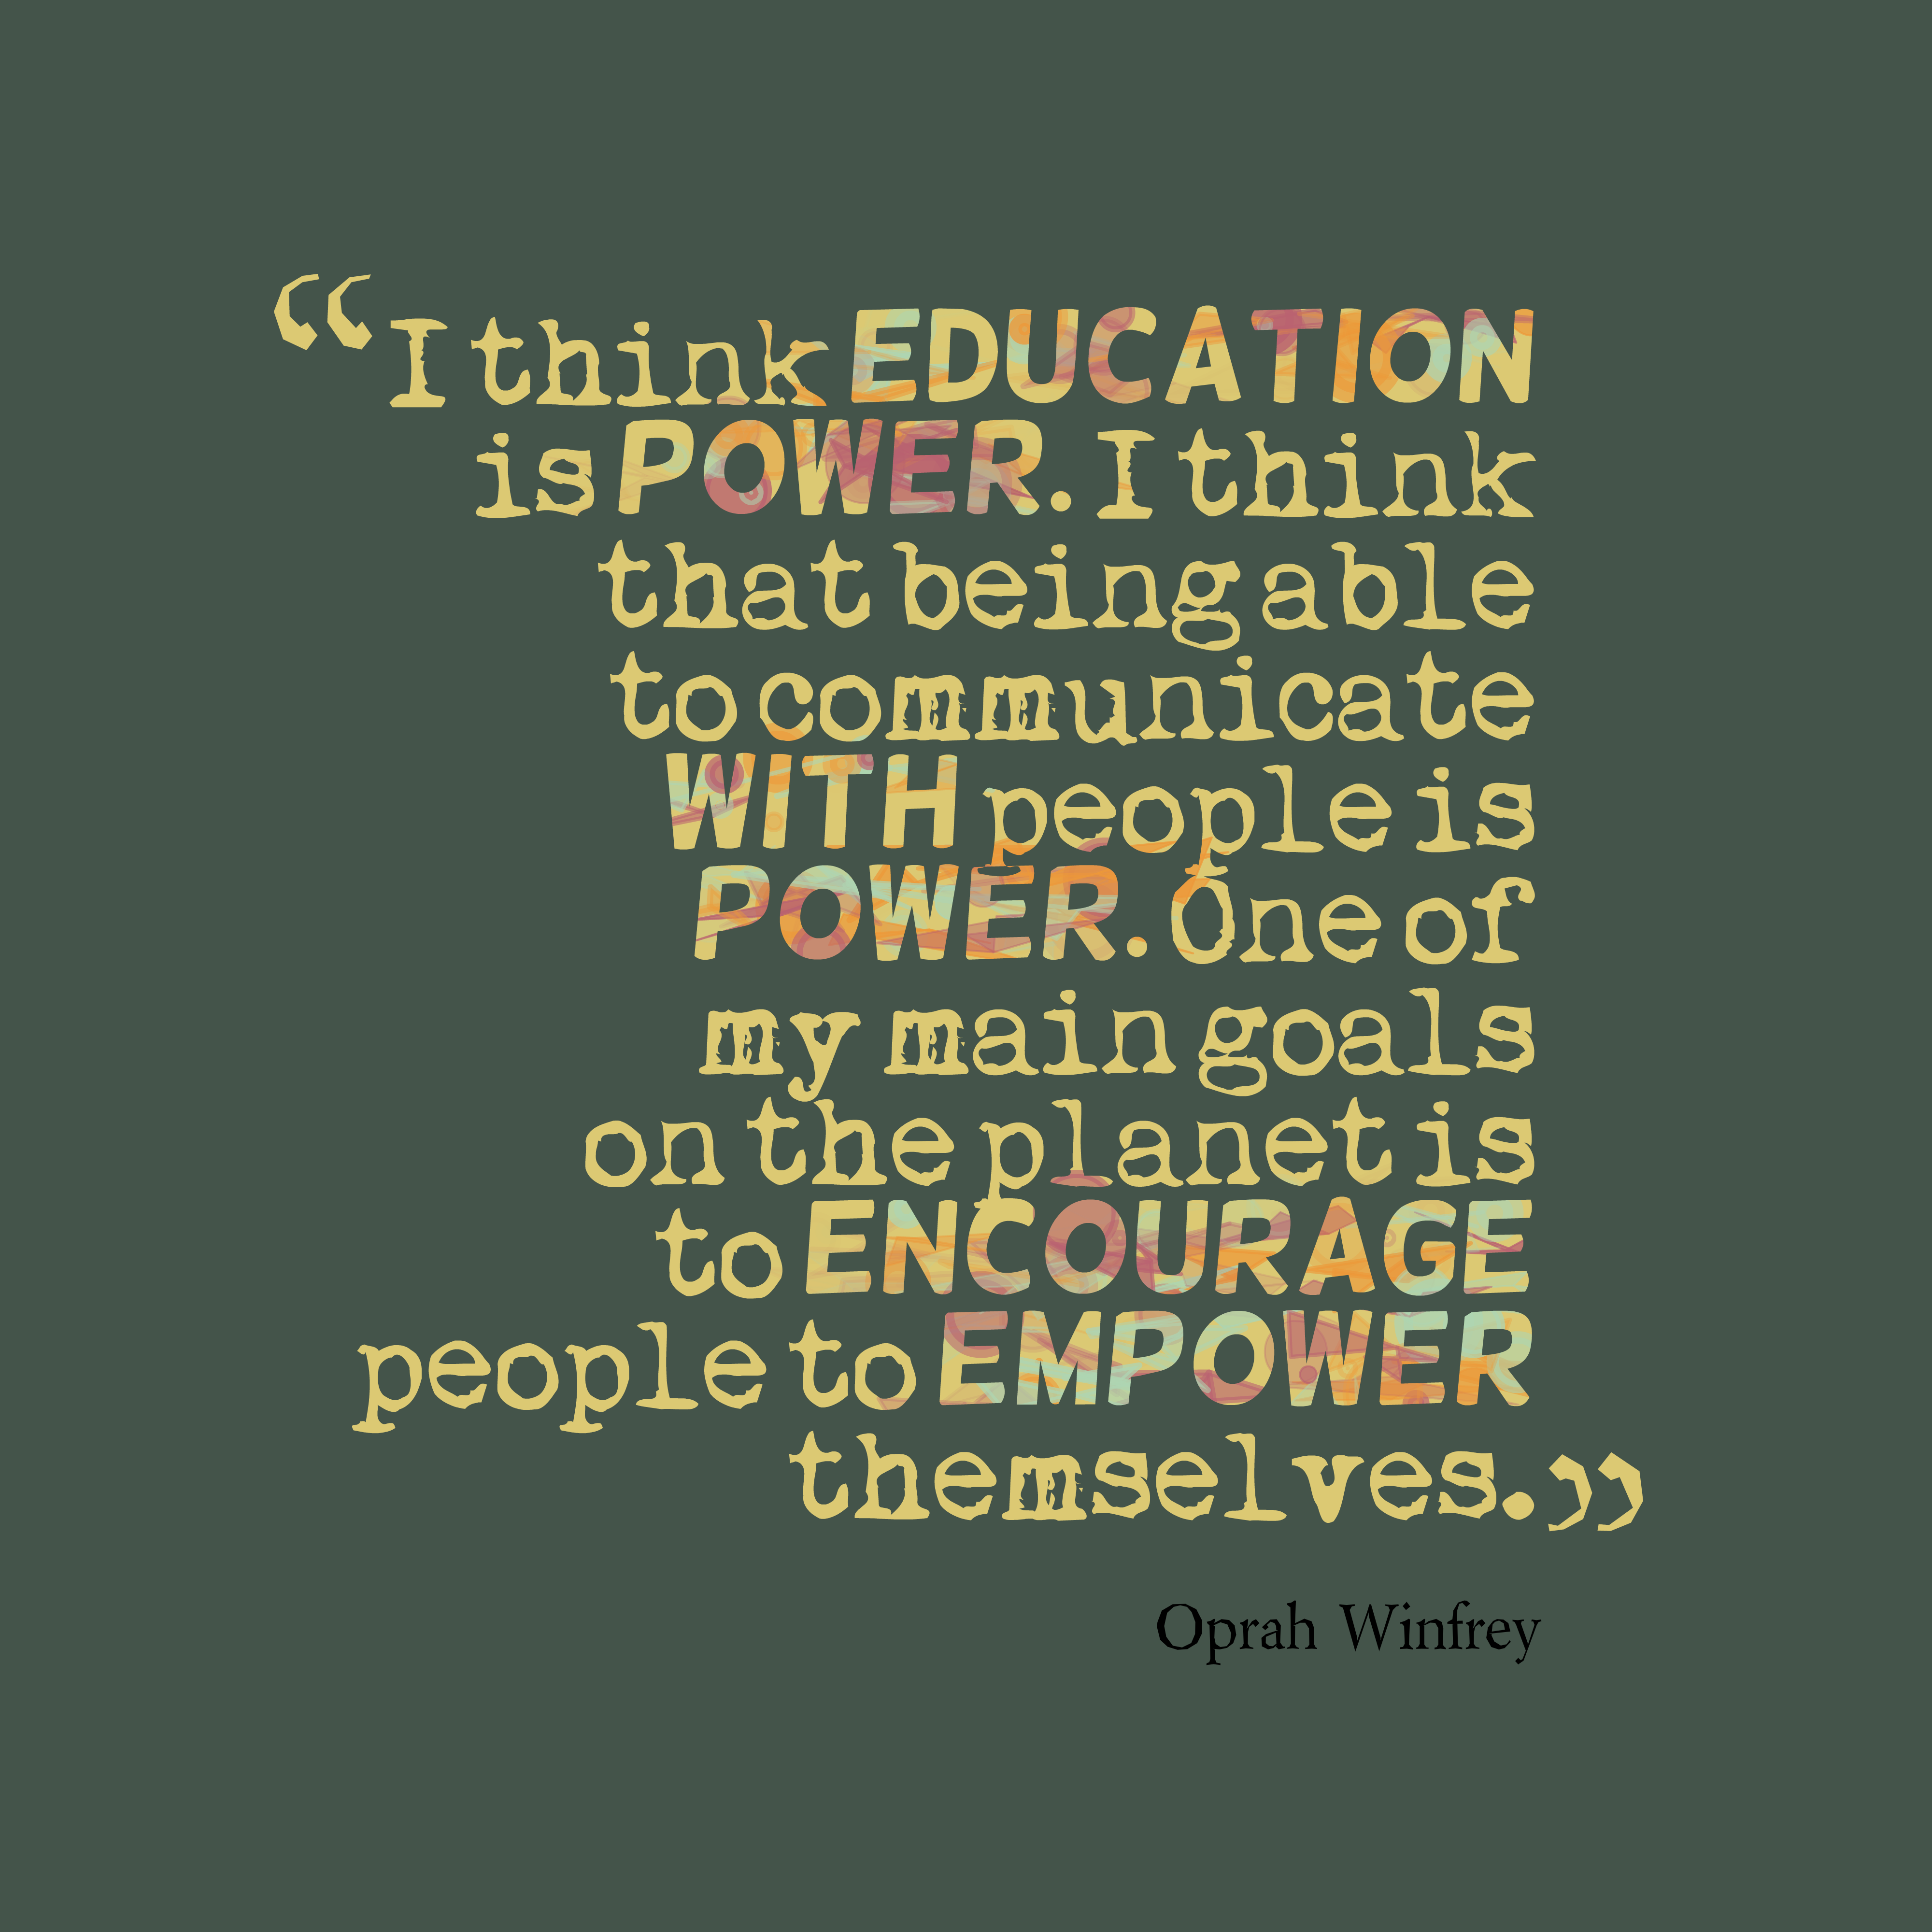 Quotes image of I think education is power. I think that being able to communicate with people is power. One of my main goals on the planet is to encourage people to empower themselves.